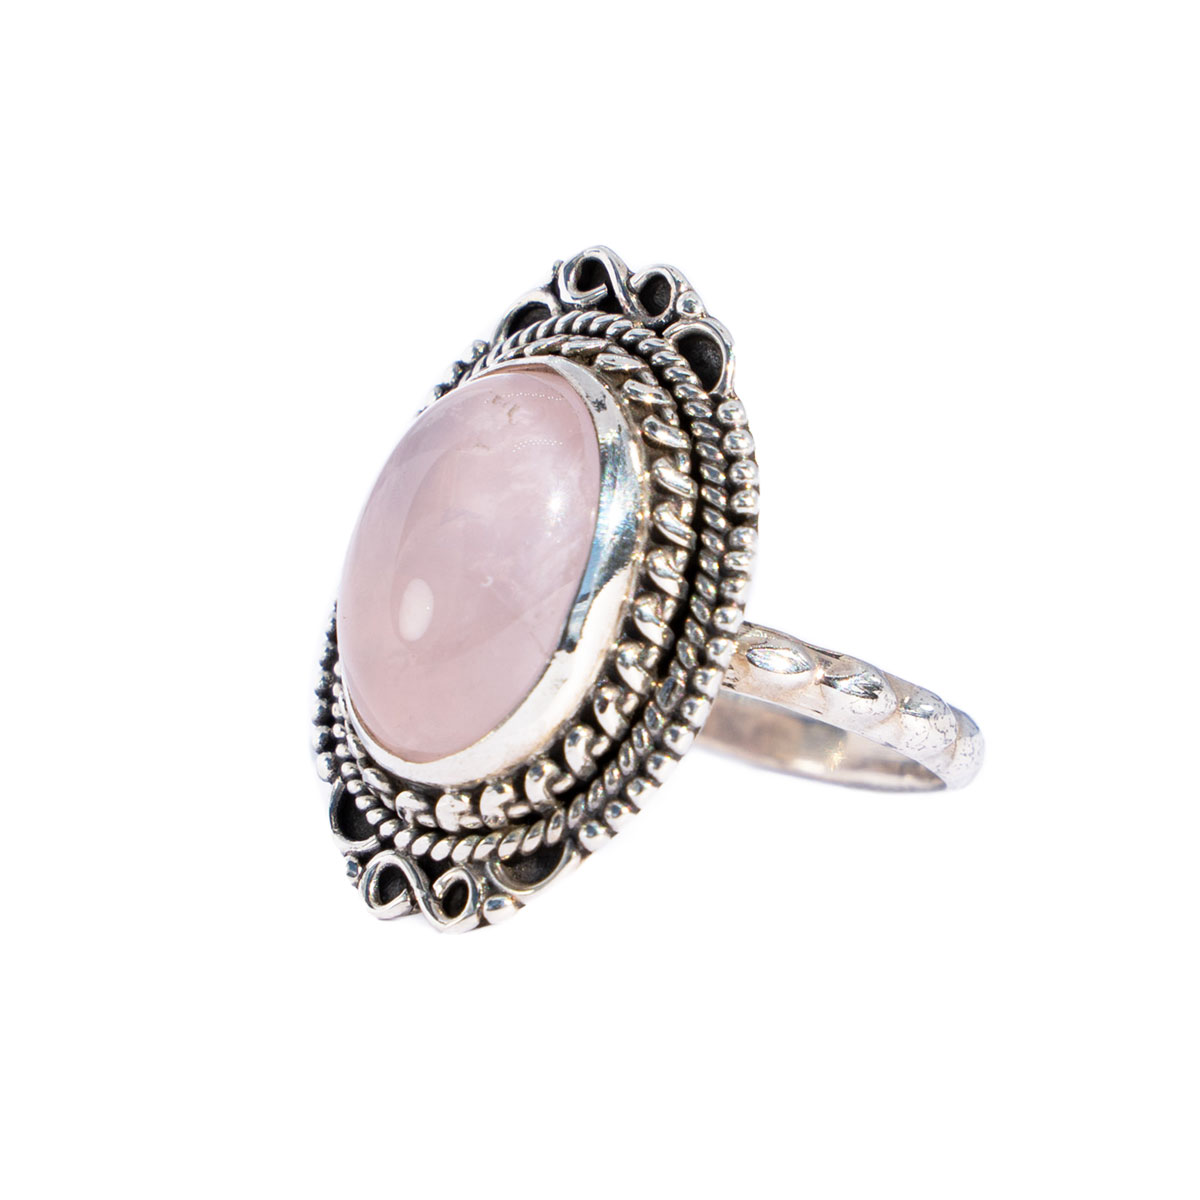 Sri Avinash Infused™ Rose Quartz Ring in Sterling Silver- Love & Compassion Infusion